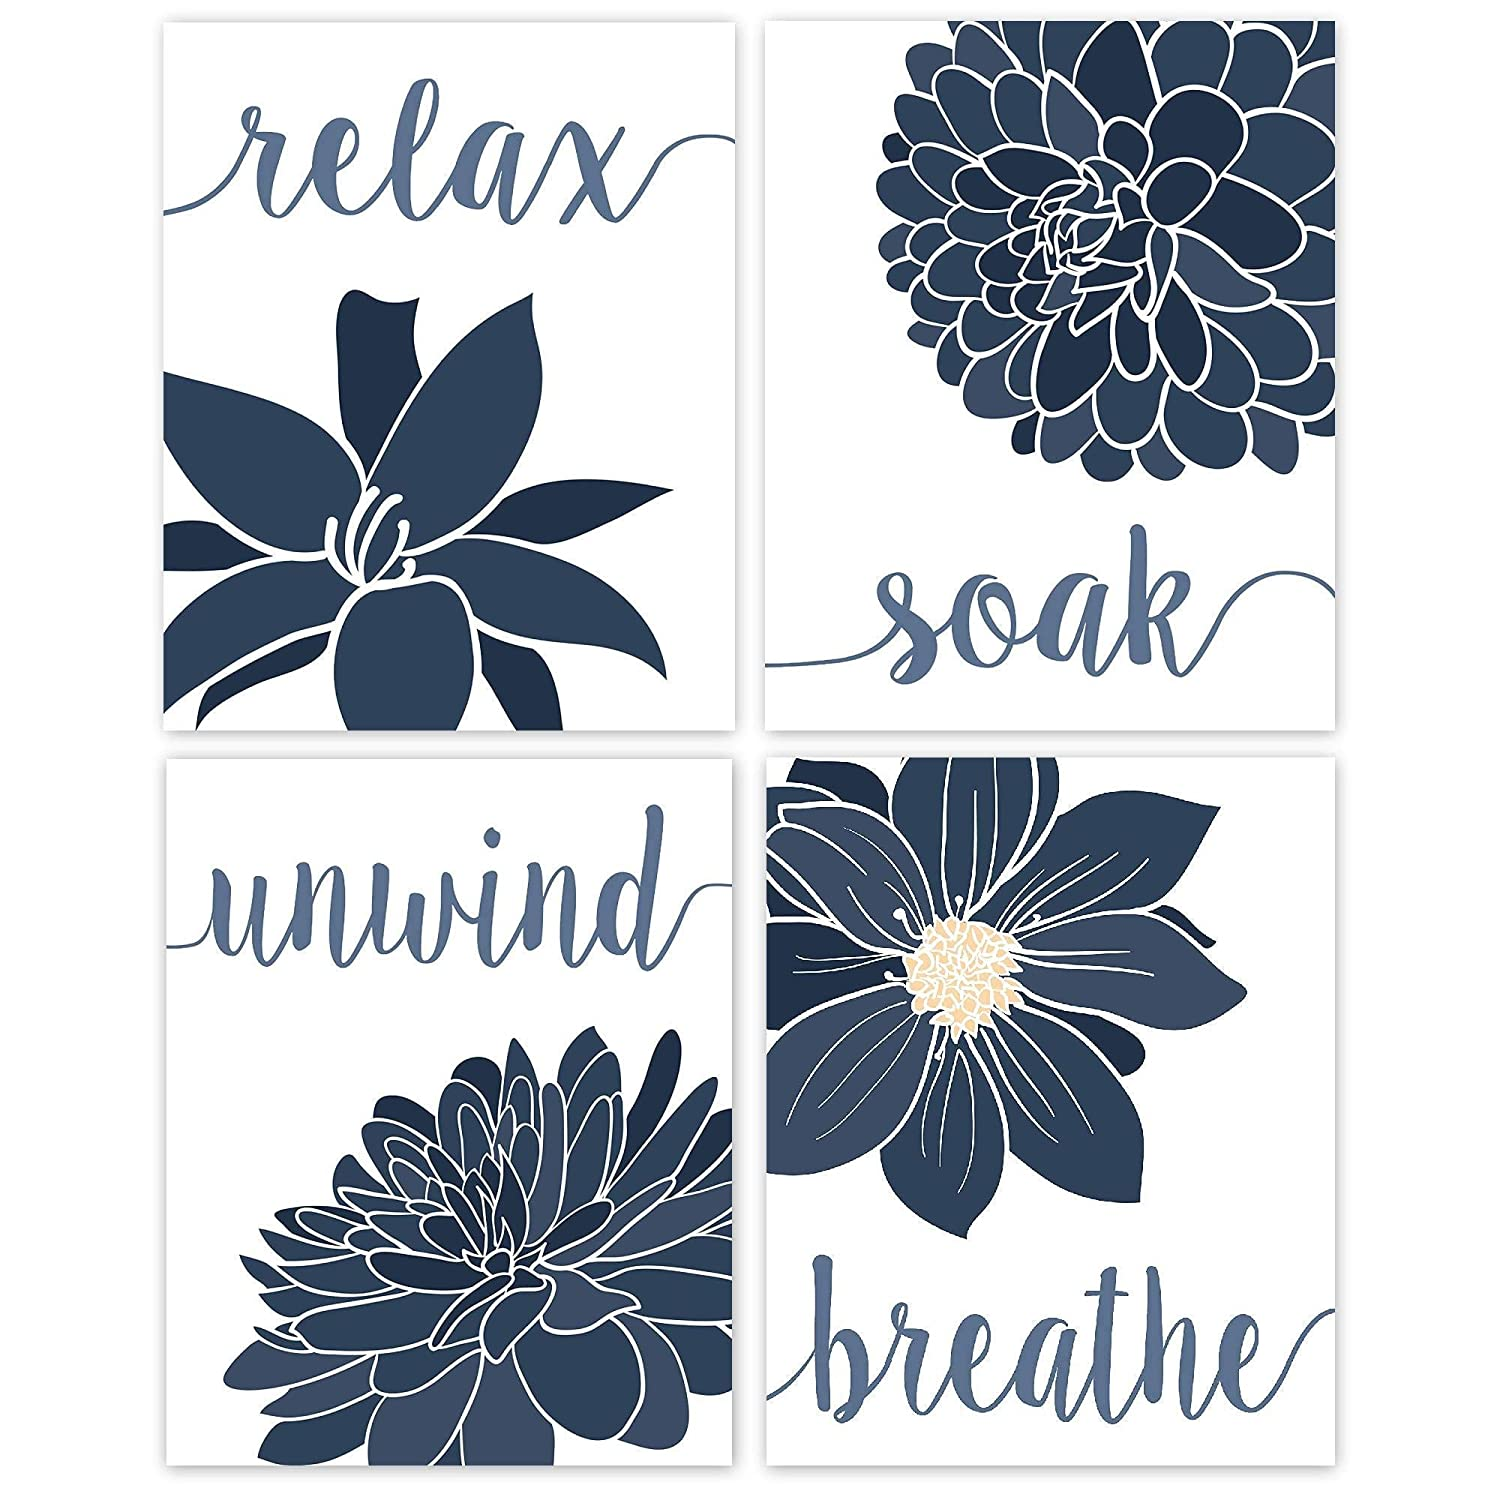 Relax, Soak, Unwind, Breathe Blue & White with Gray Tone Bath Flower Poster Prints, Set of 4 (8x10) Unframed Photos, Wall Art Decor Gifts Under 20 for College, Home, Student, Teacher, Floral Fan